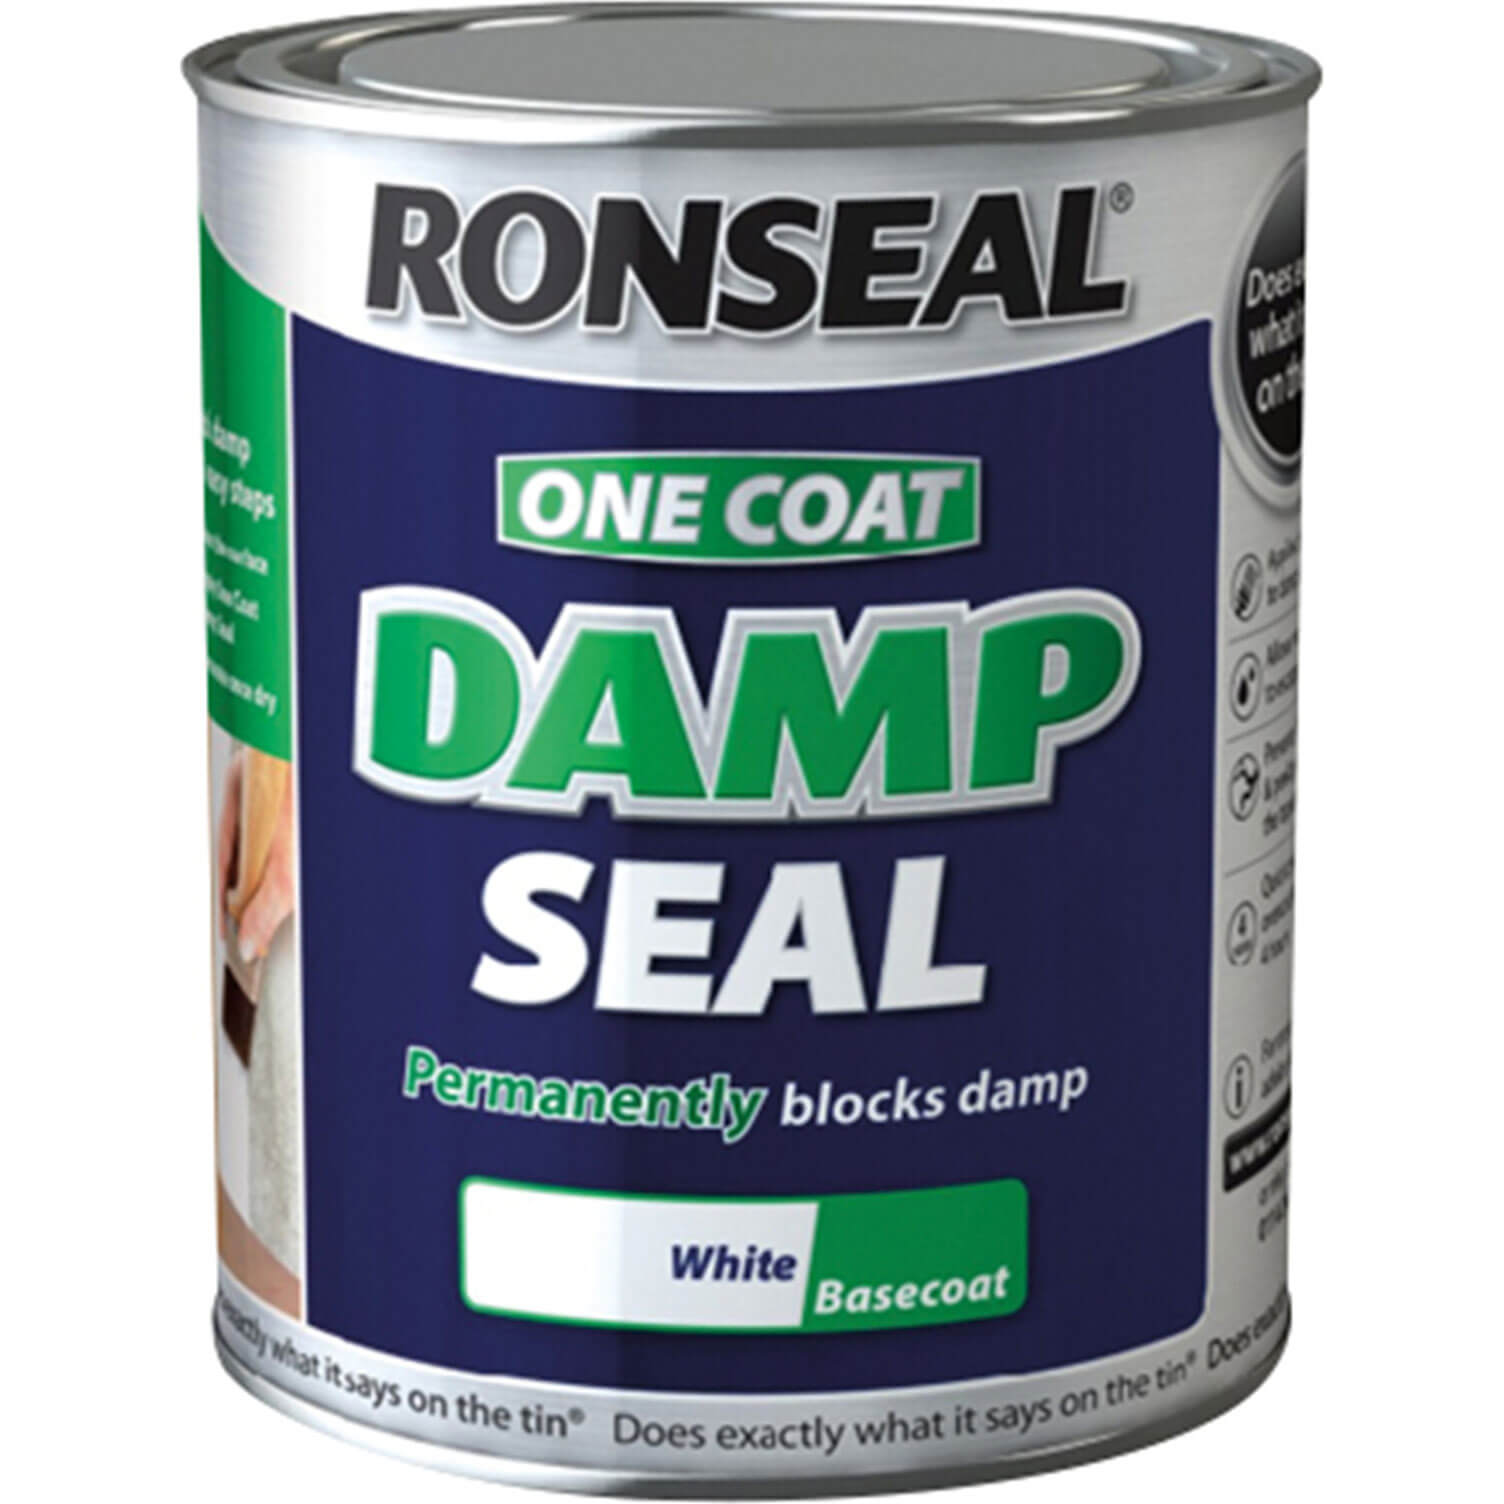 Image of Ronseal One Coat Damp Seal White 250ml